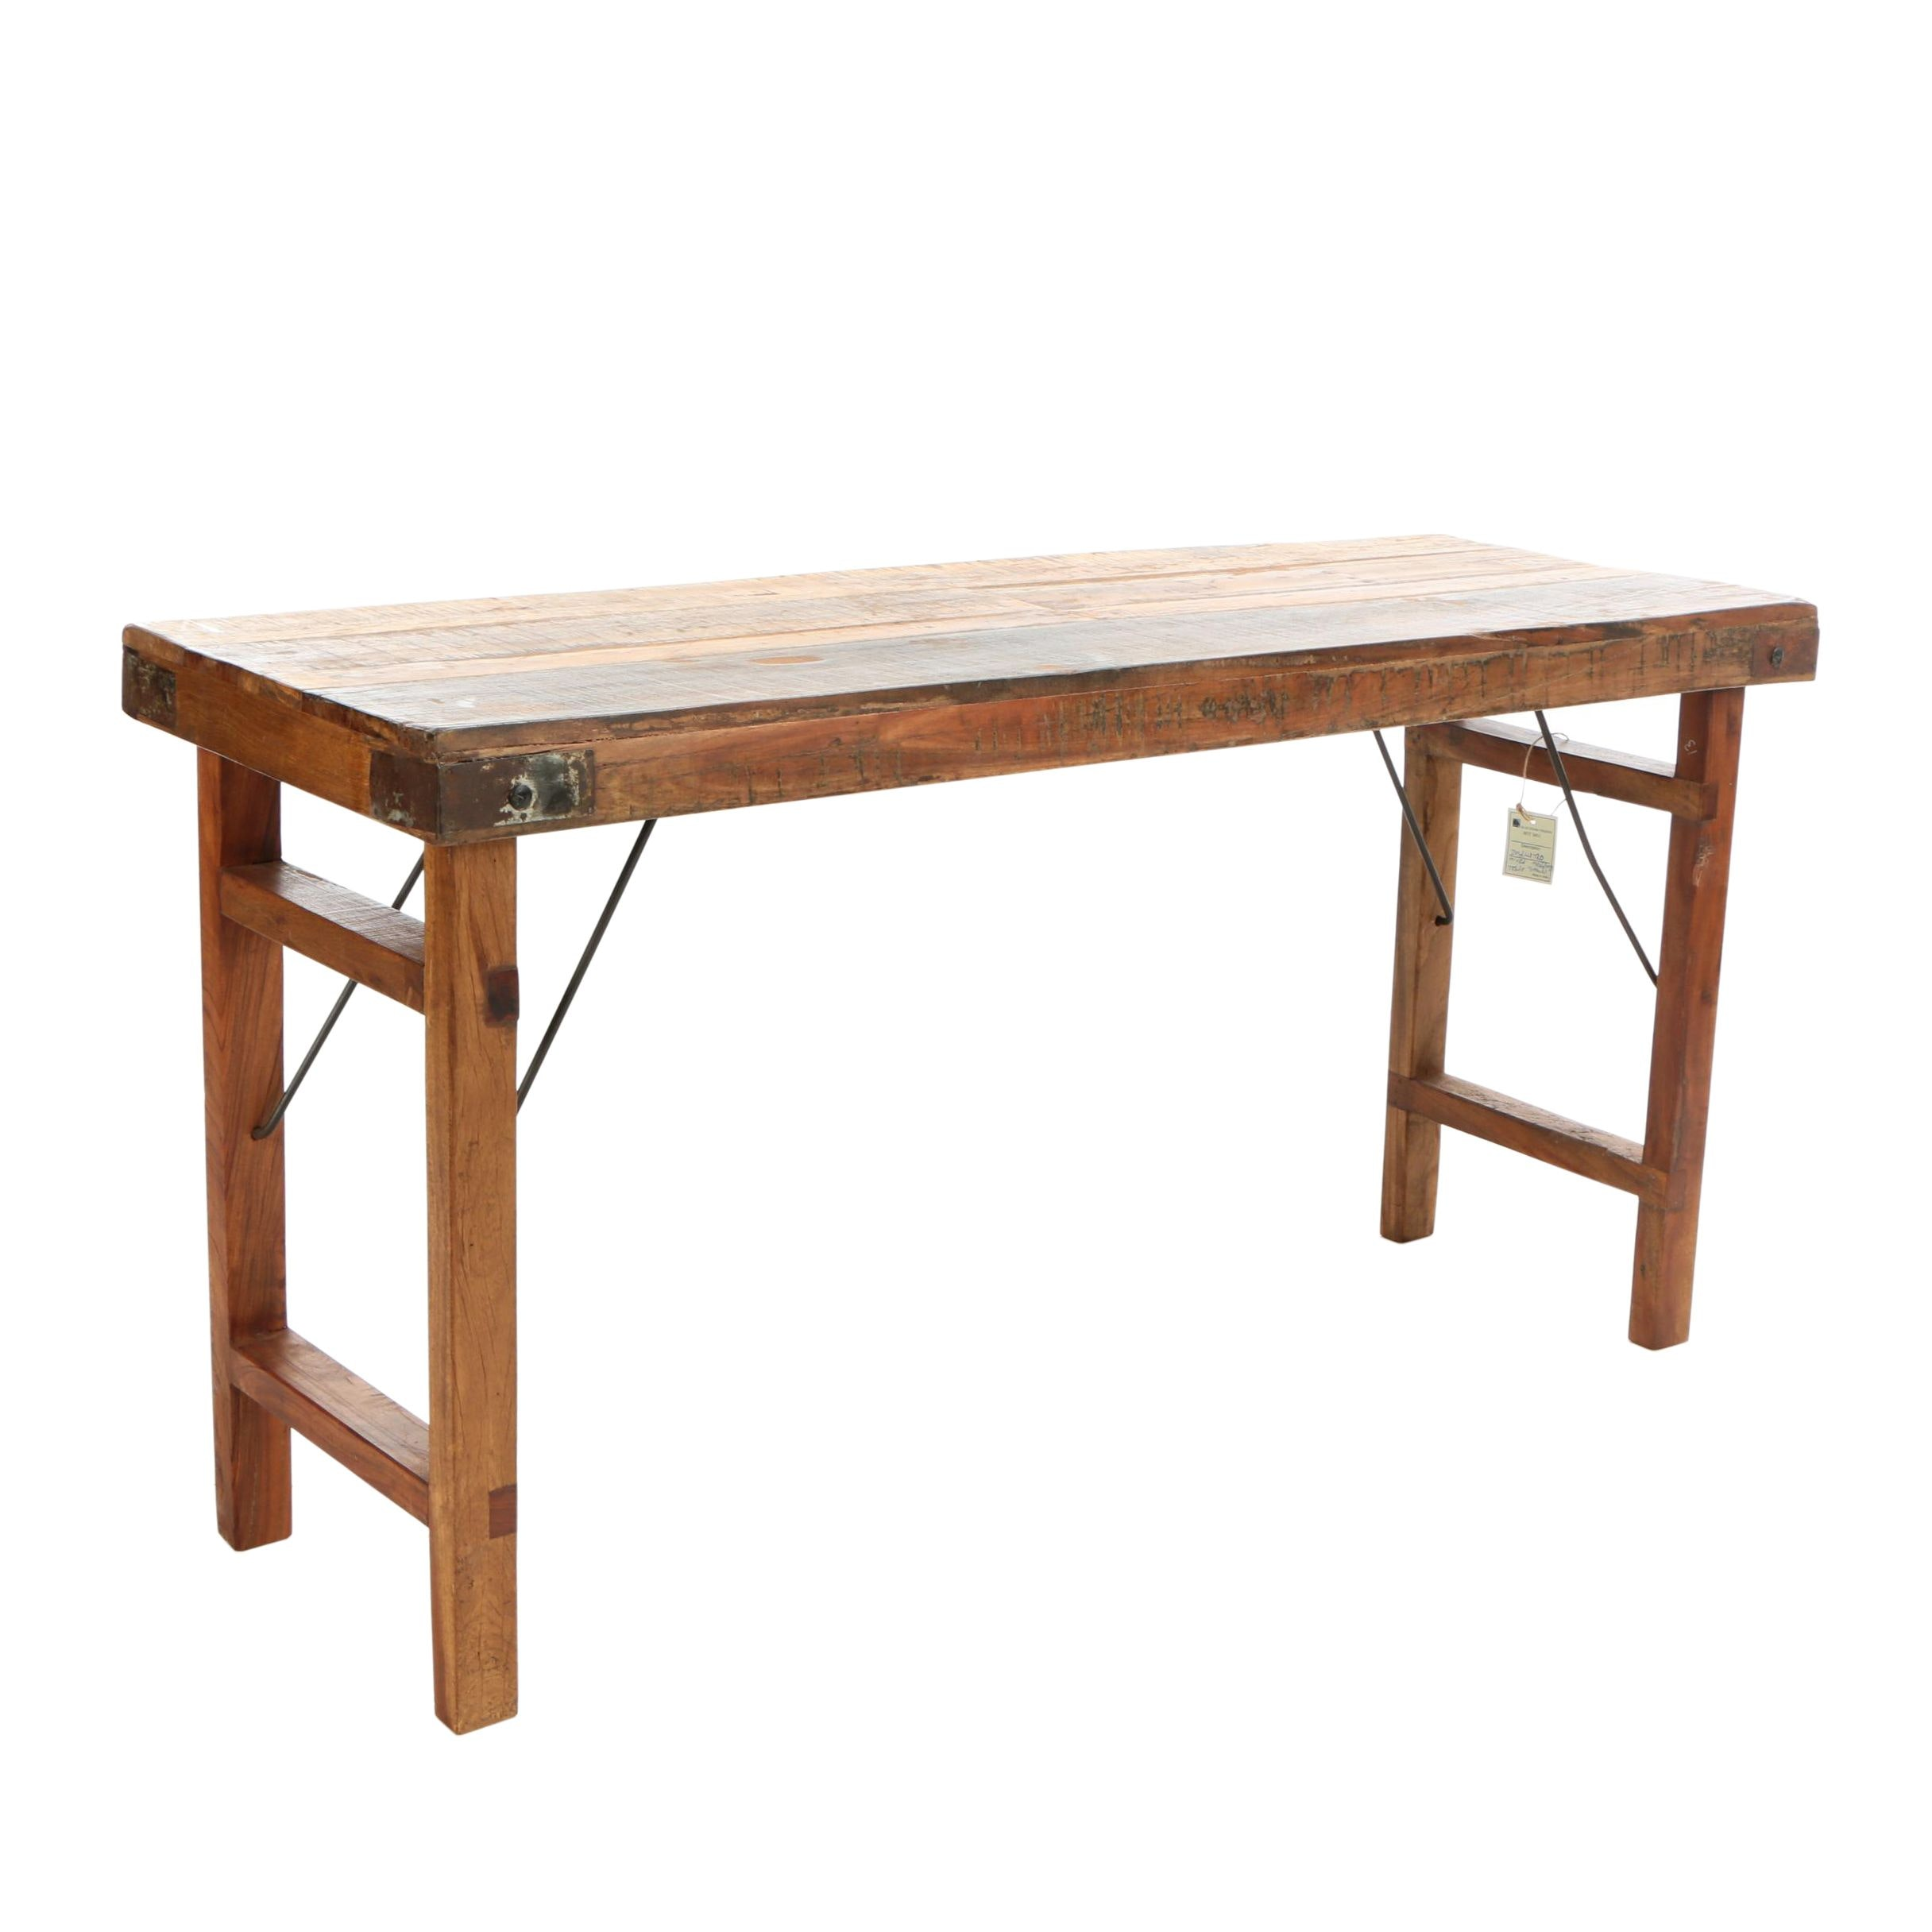 Industrial Style Indian Hardwood Folding Banquet Table, 20th Century